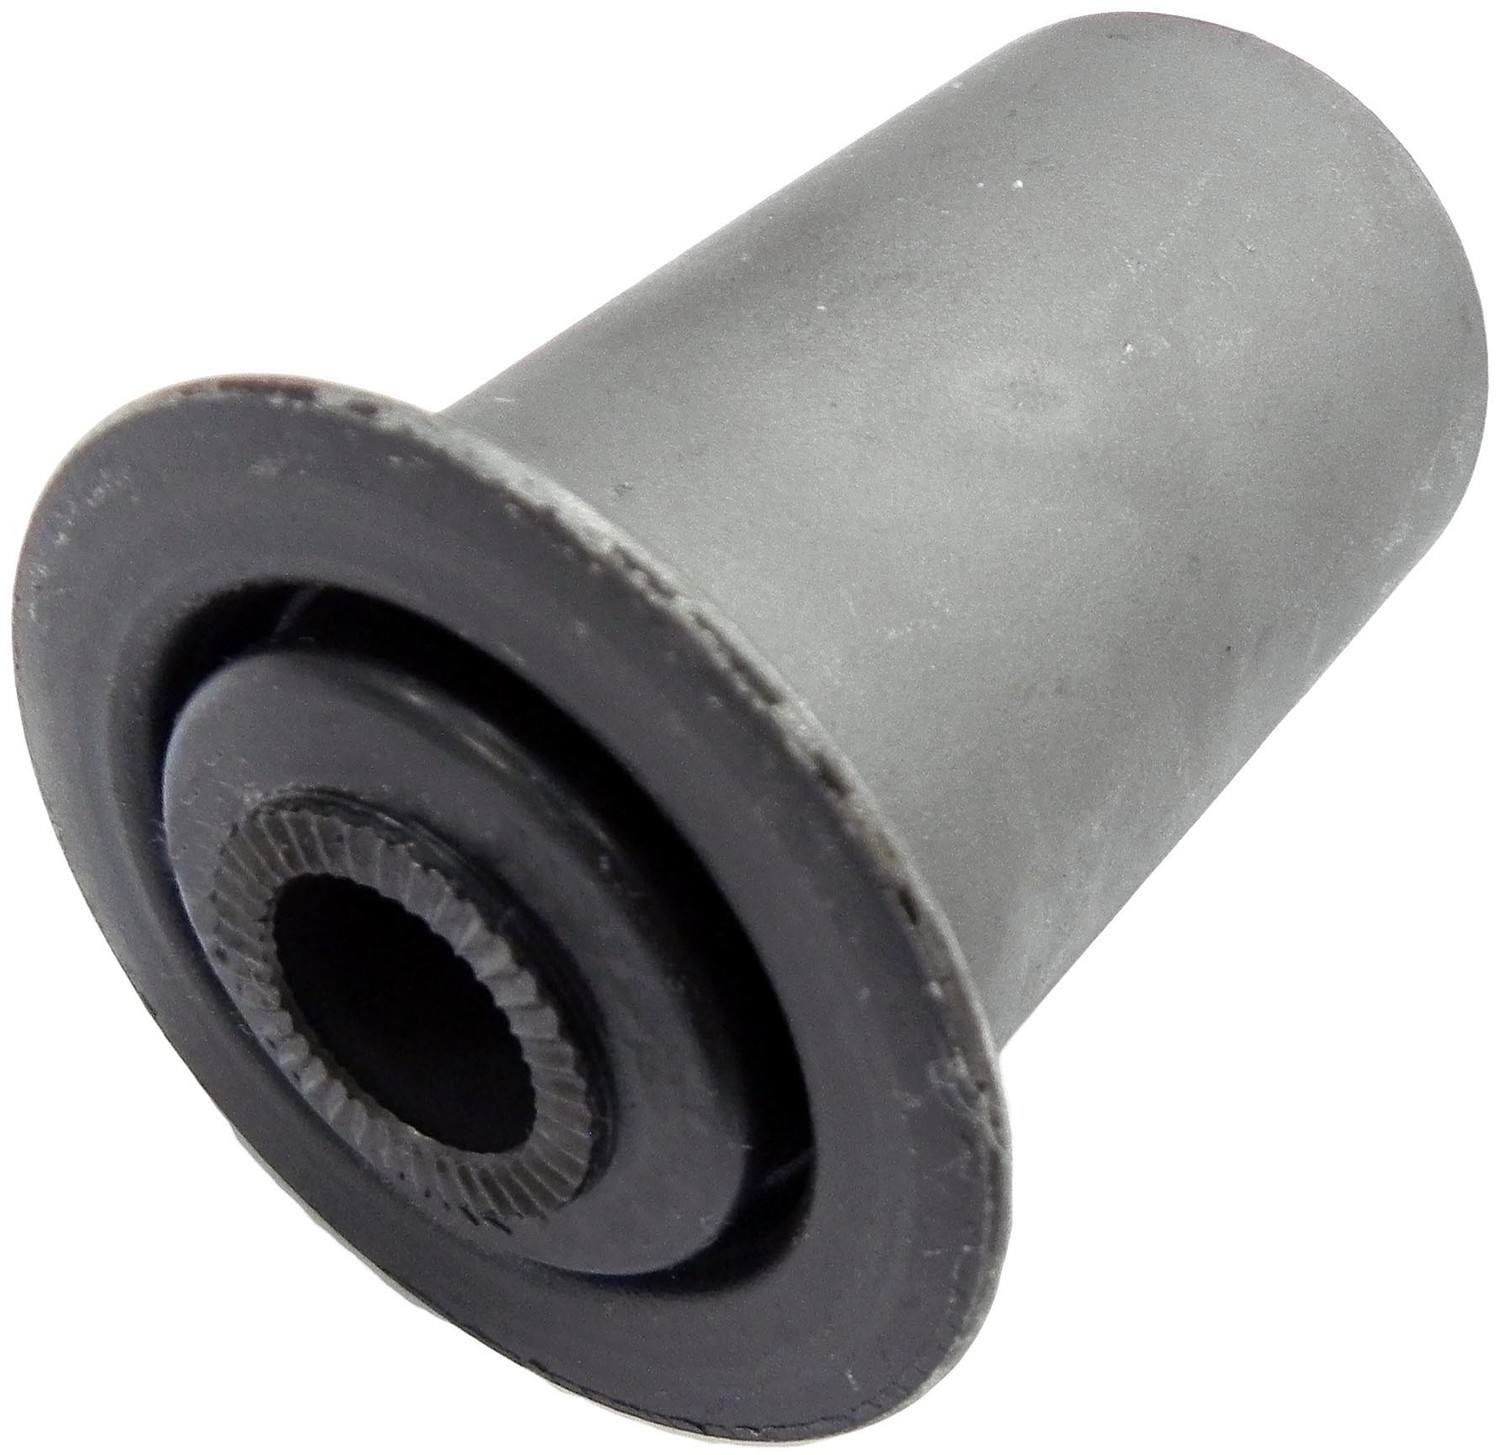 DORMAN OE SOLUTIONS - Leaf Spring Shackle Bushing - DRE 531-628